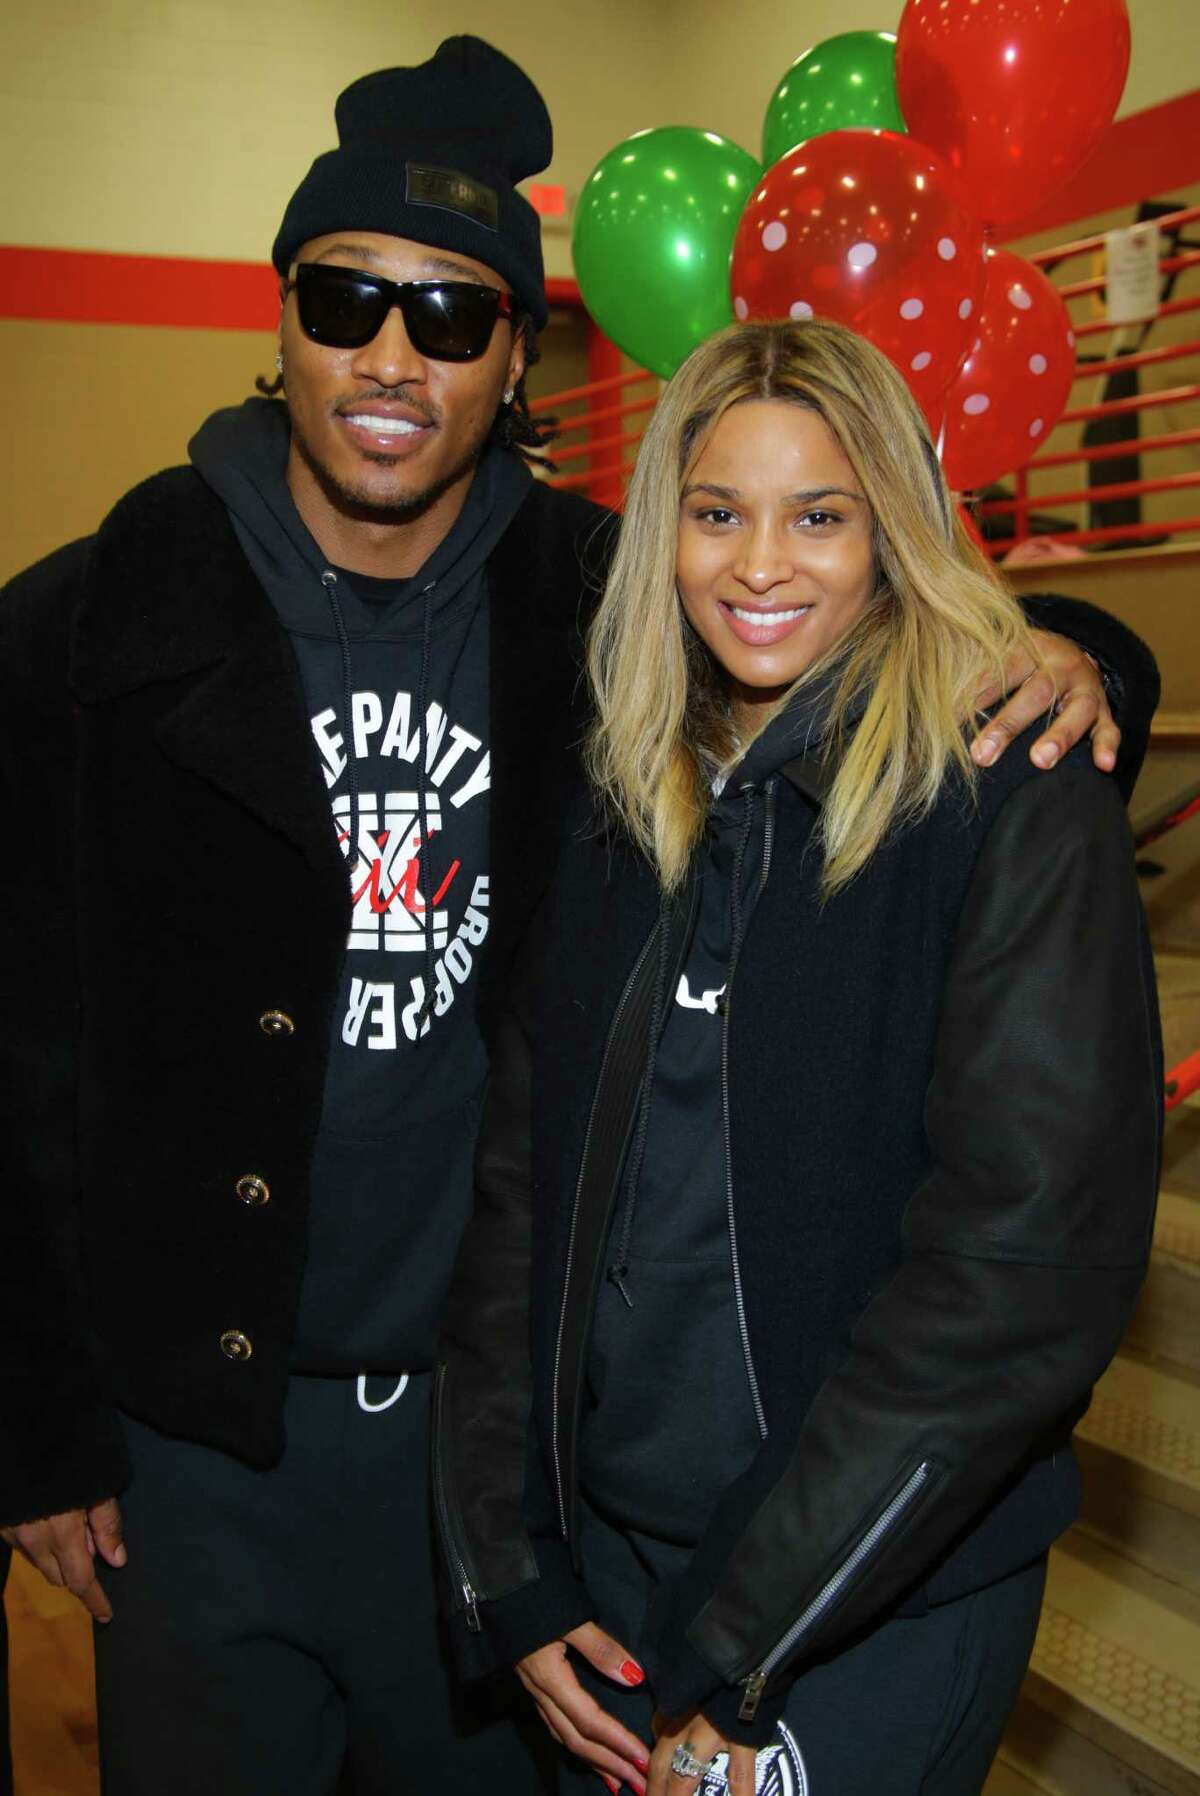 She's been engaged once before Ciara broke off her engagement to rapper Future in August 2014. The pair had been engaged since October 2013, and rumor has it Ciara called the whole thing off after rumors that Future was seeing another hot young R&B singer, Tinashe. For a short time the pair reunited, but the break-up became official when Ciara returned the 15-carat diamond engagement ring Future had specially designed for her. (Photo by Prince Williams/FilmMagic)